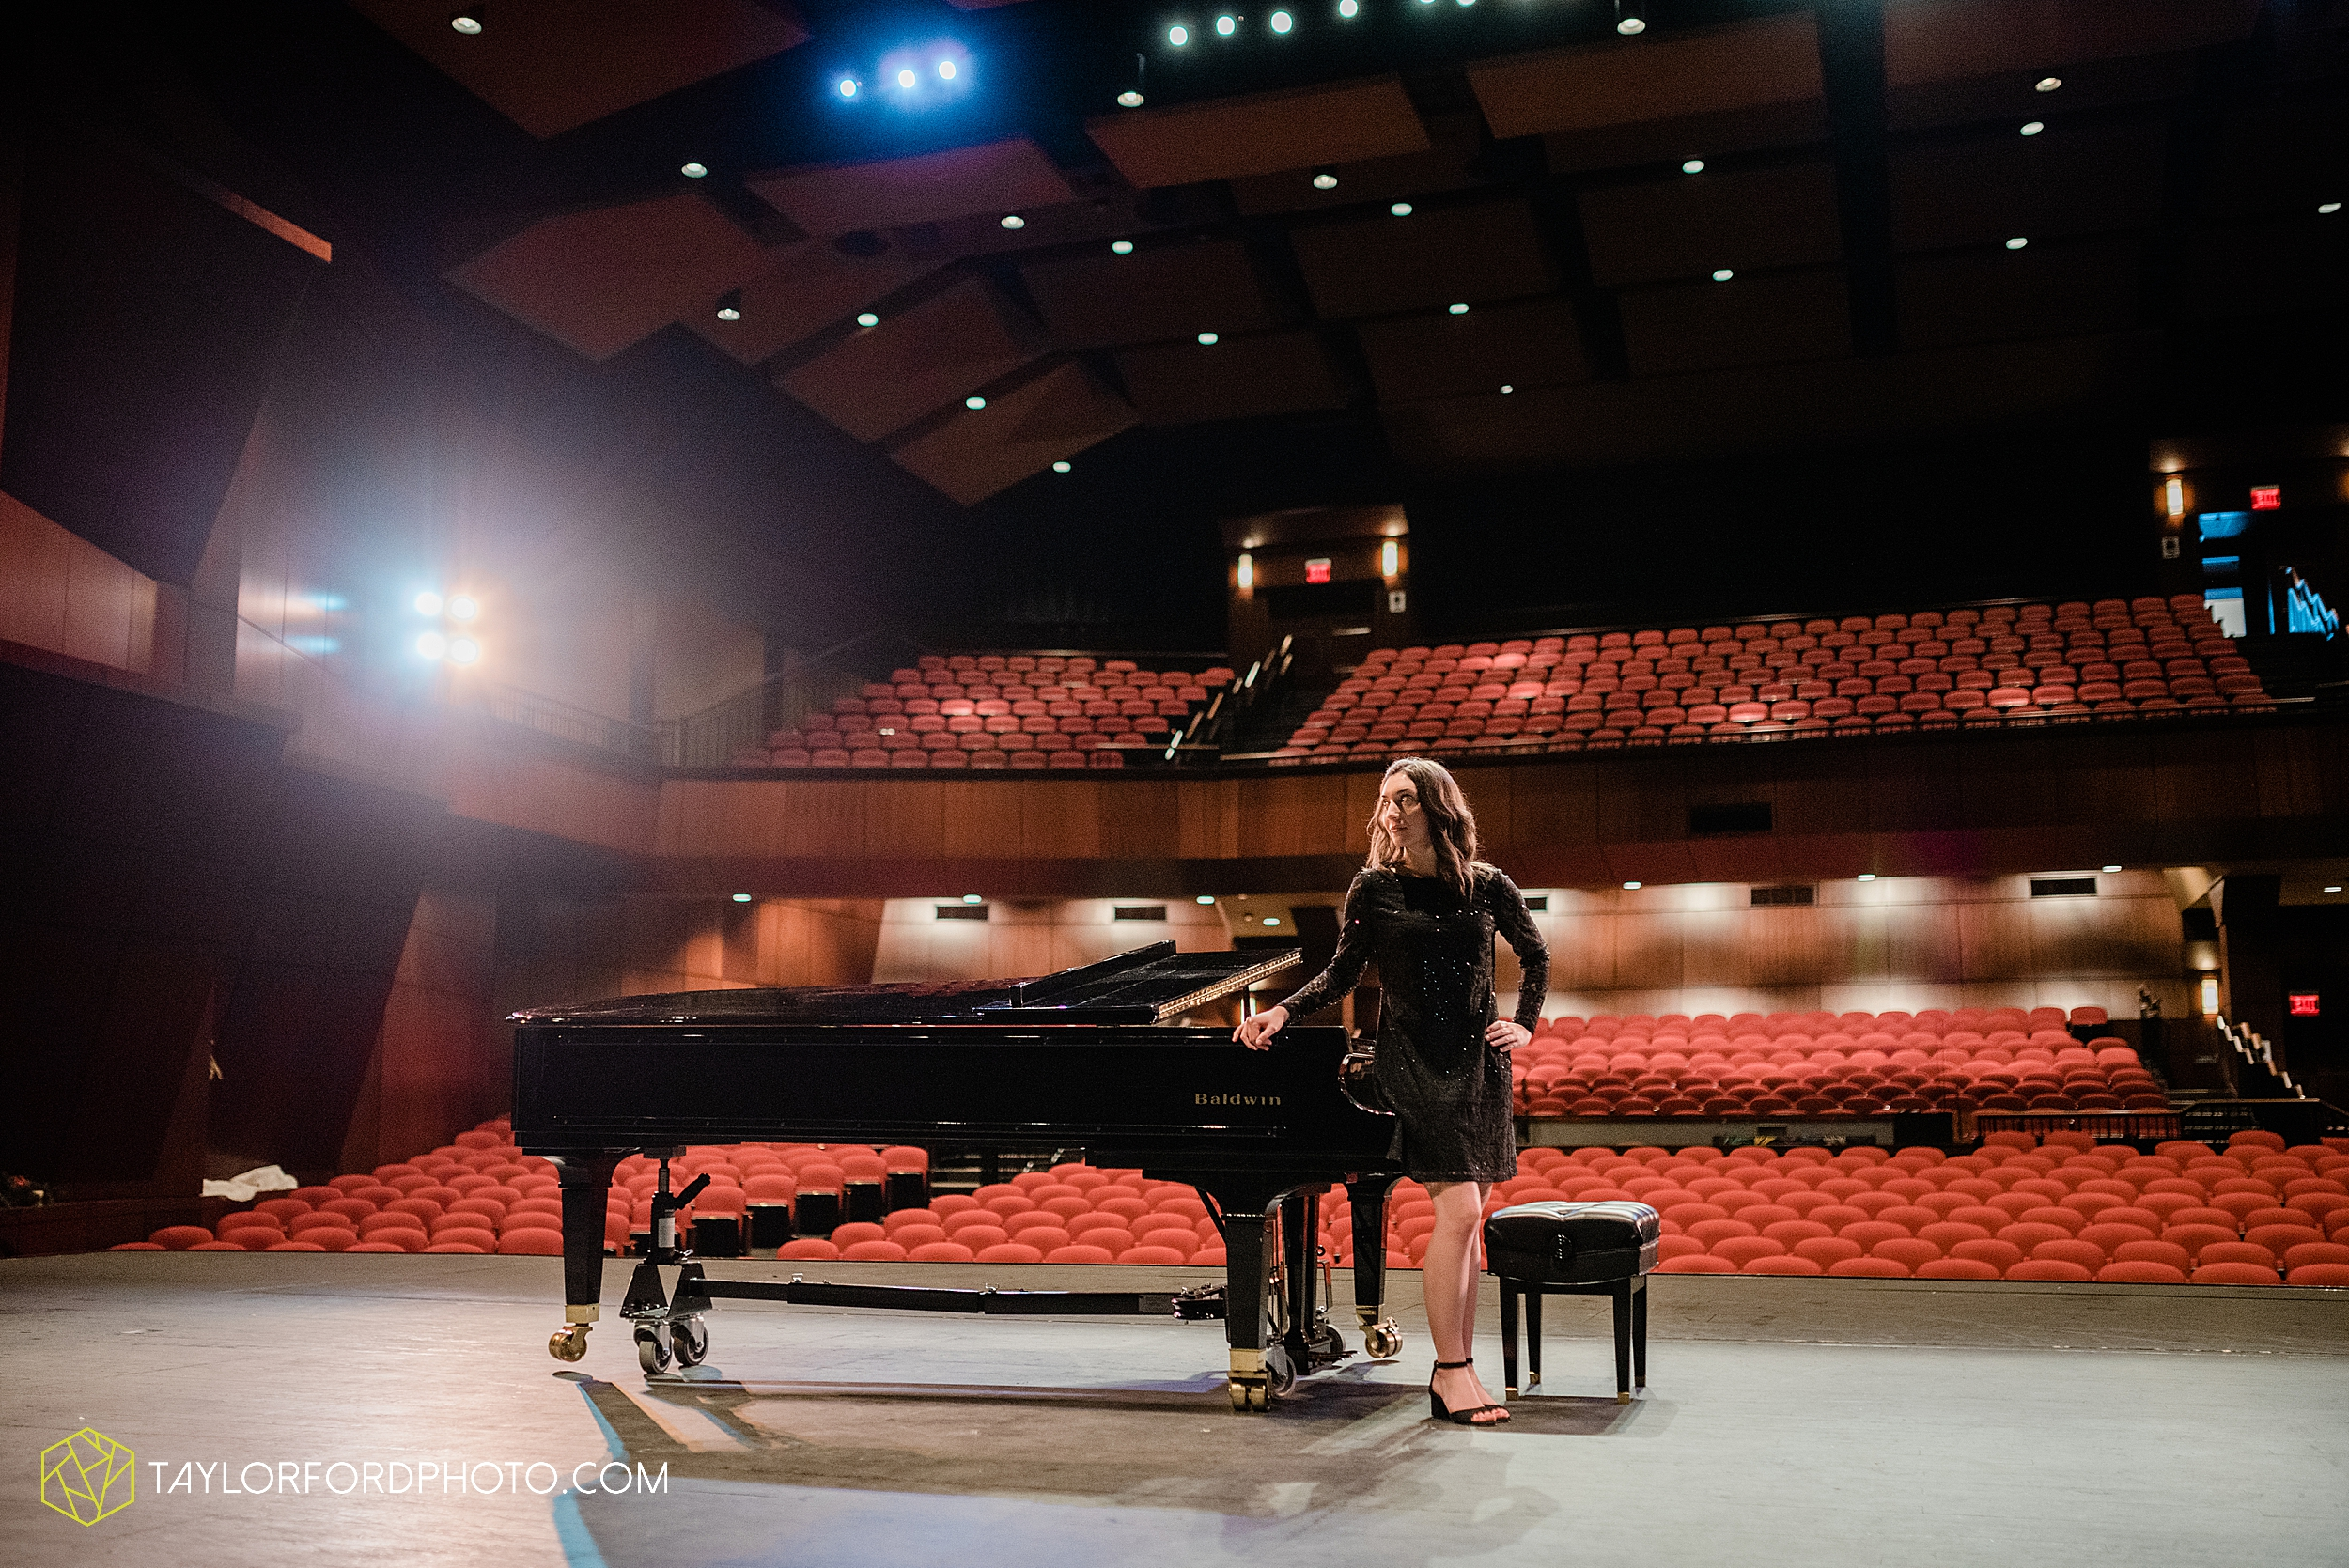 niswonger-performing-arts-center-senior-grand-piano-van-wert-ohio-photography-taylor-ford-hirschy-photographer_2114.jpg